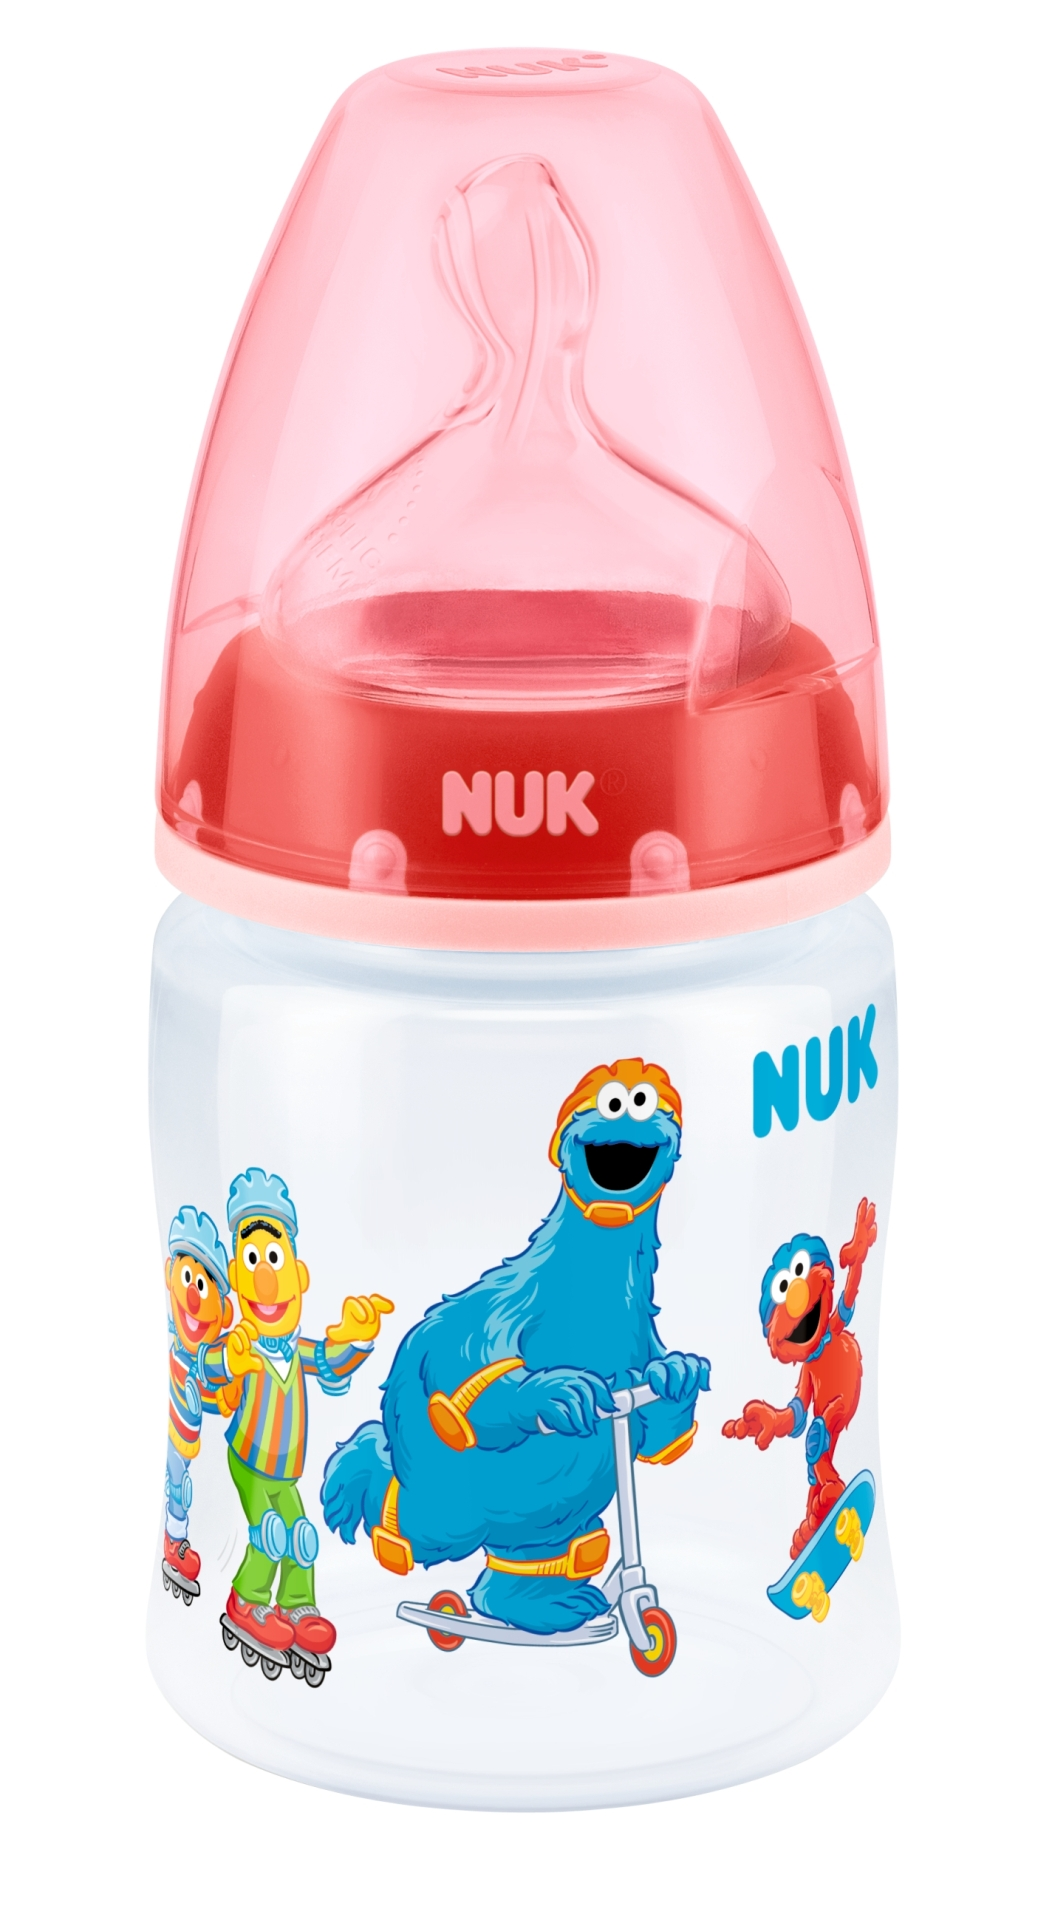 Nuk for baby